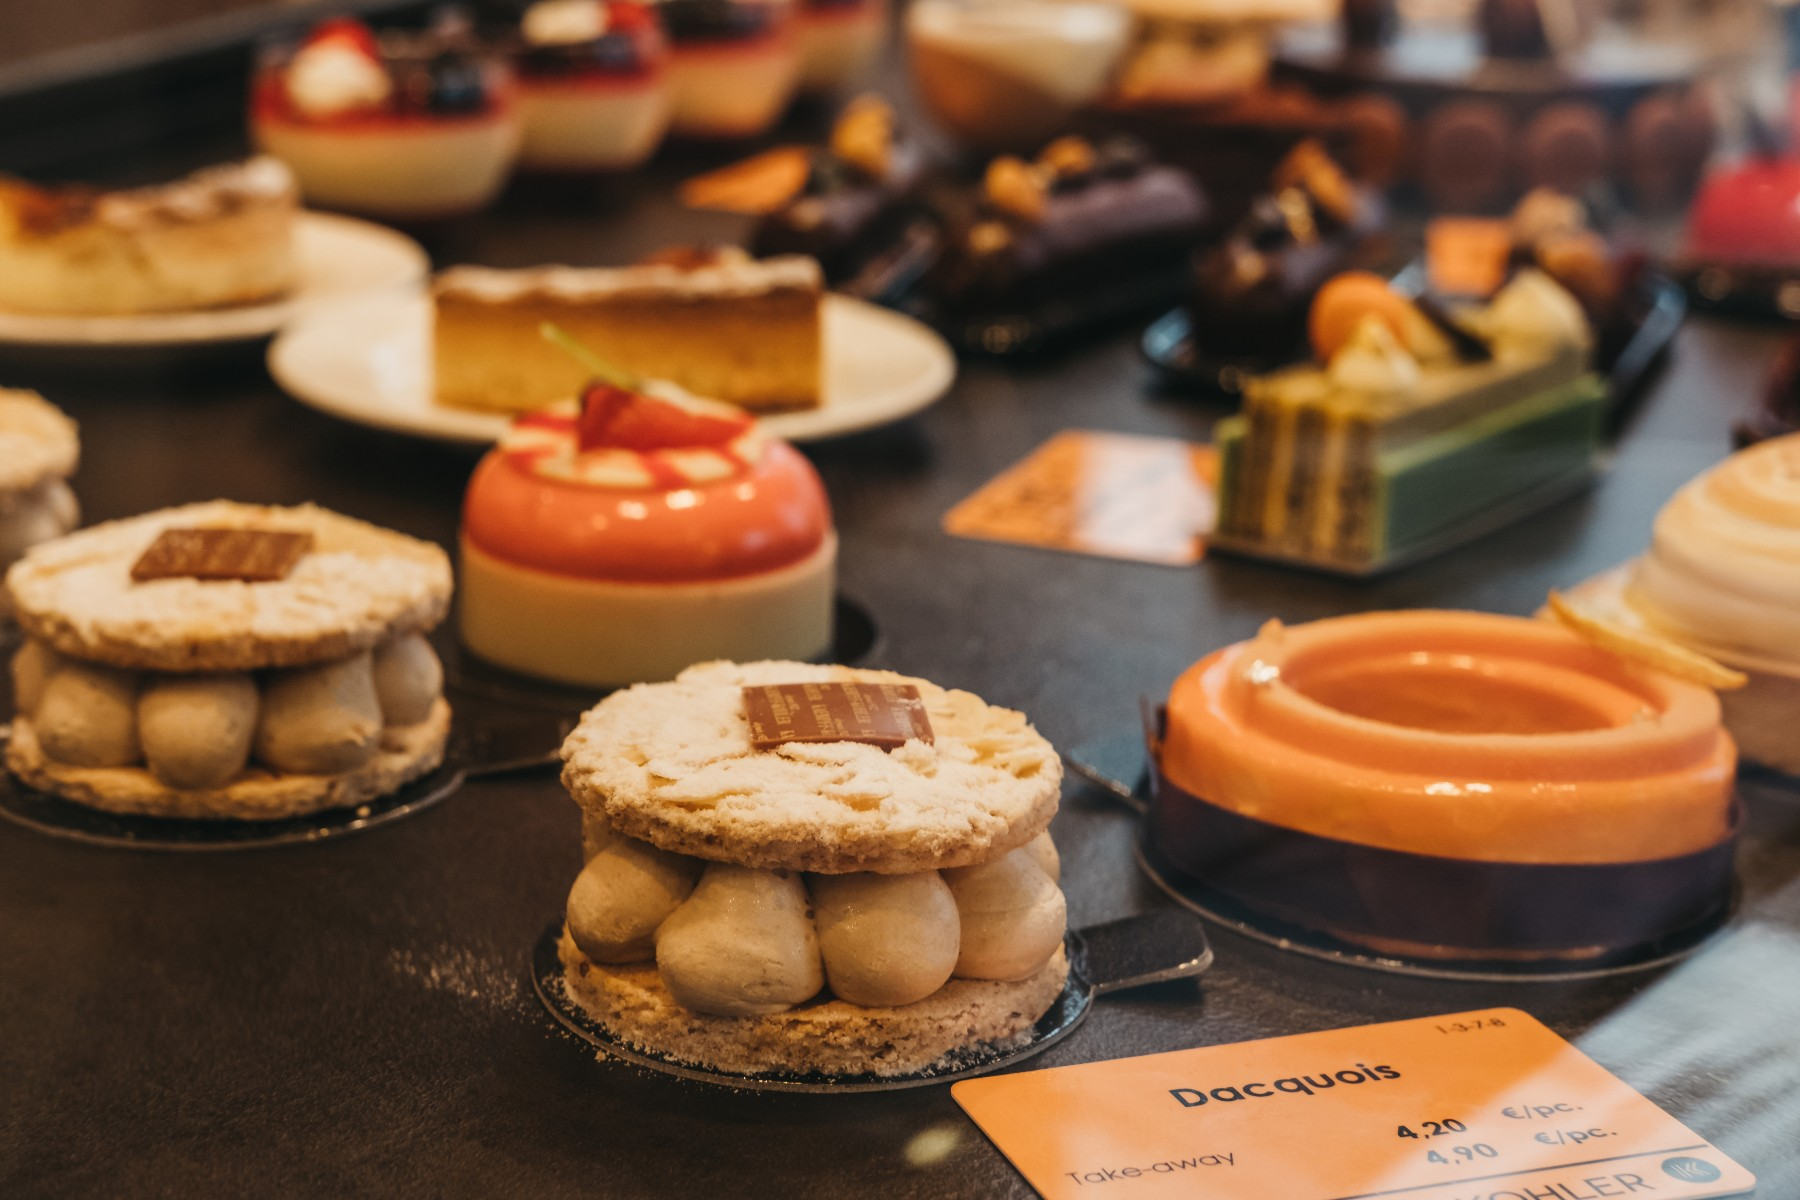 array of desserts in a Luxembourg cafe